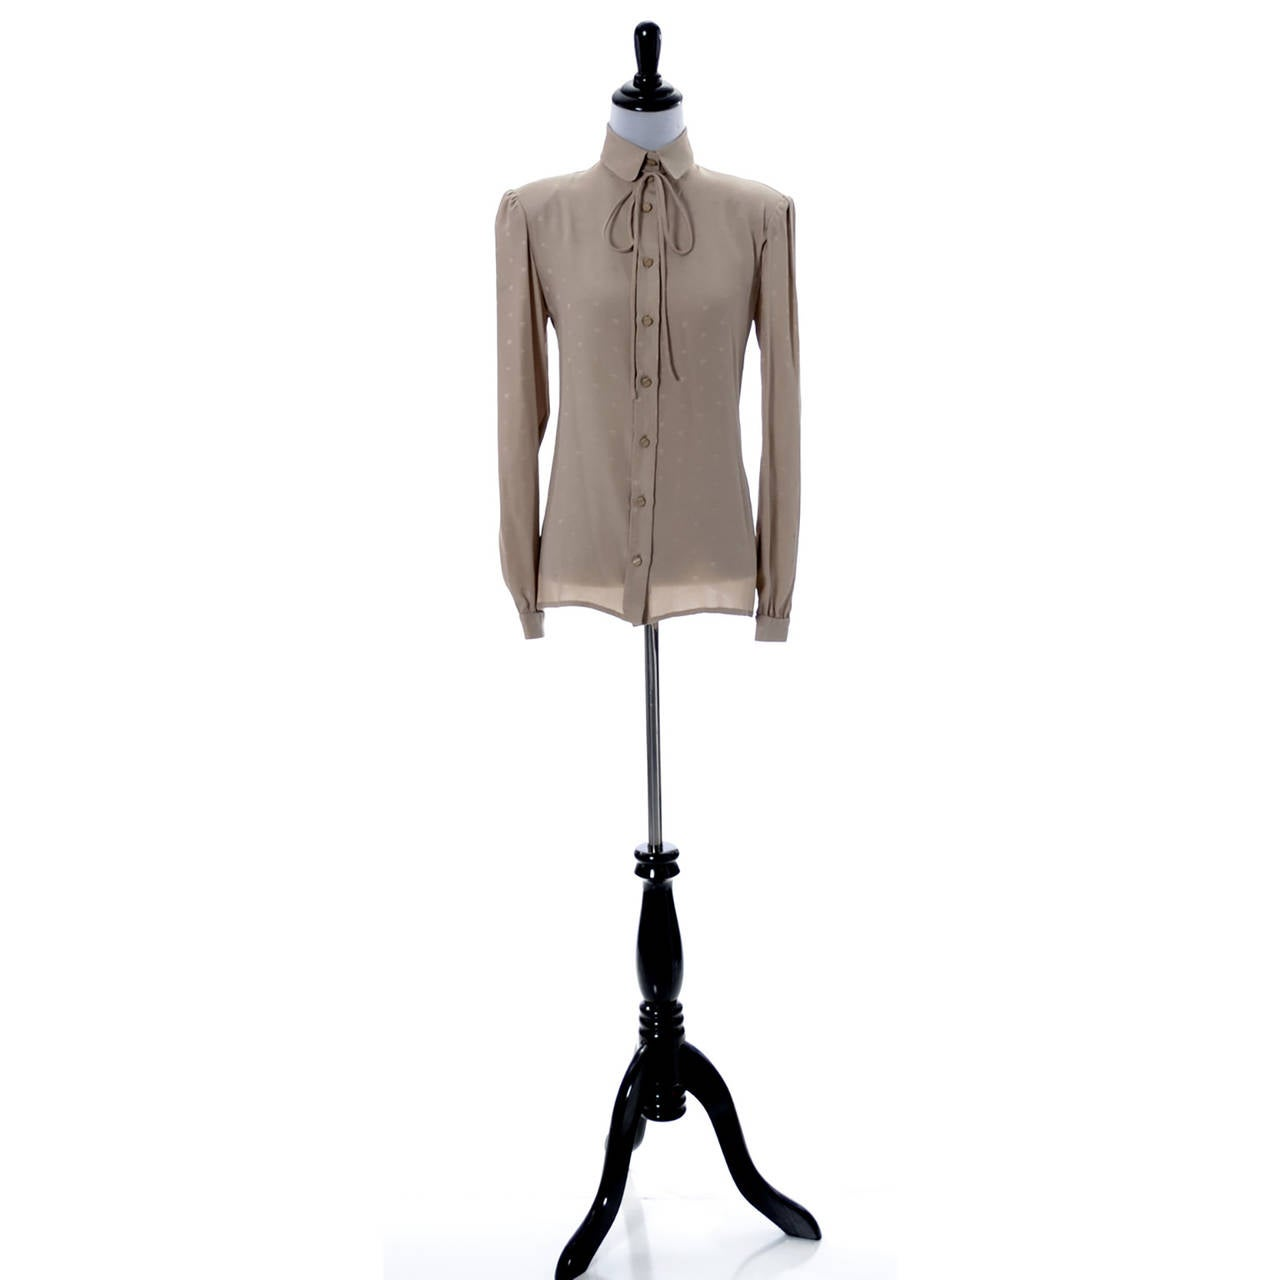 This is a classic, beautiful vintage Valentino silk blouse in tan/taupe with a Valentino V logo tone on tone pattern.  There is a fabric tie at the neck and this top is in mint condition.  This blouse was made in Italy, and I would estimate this to